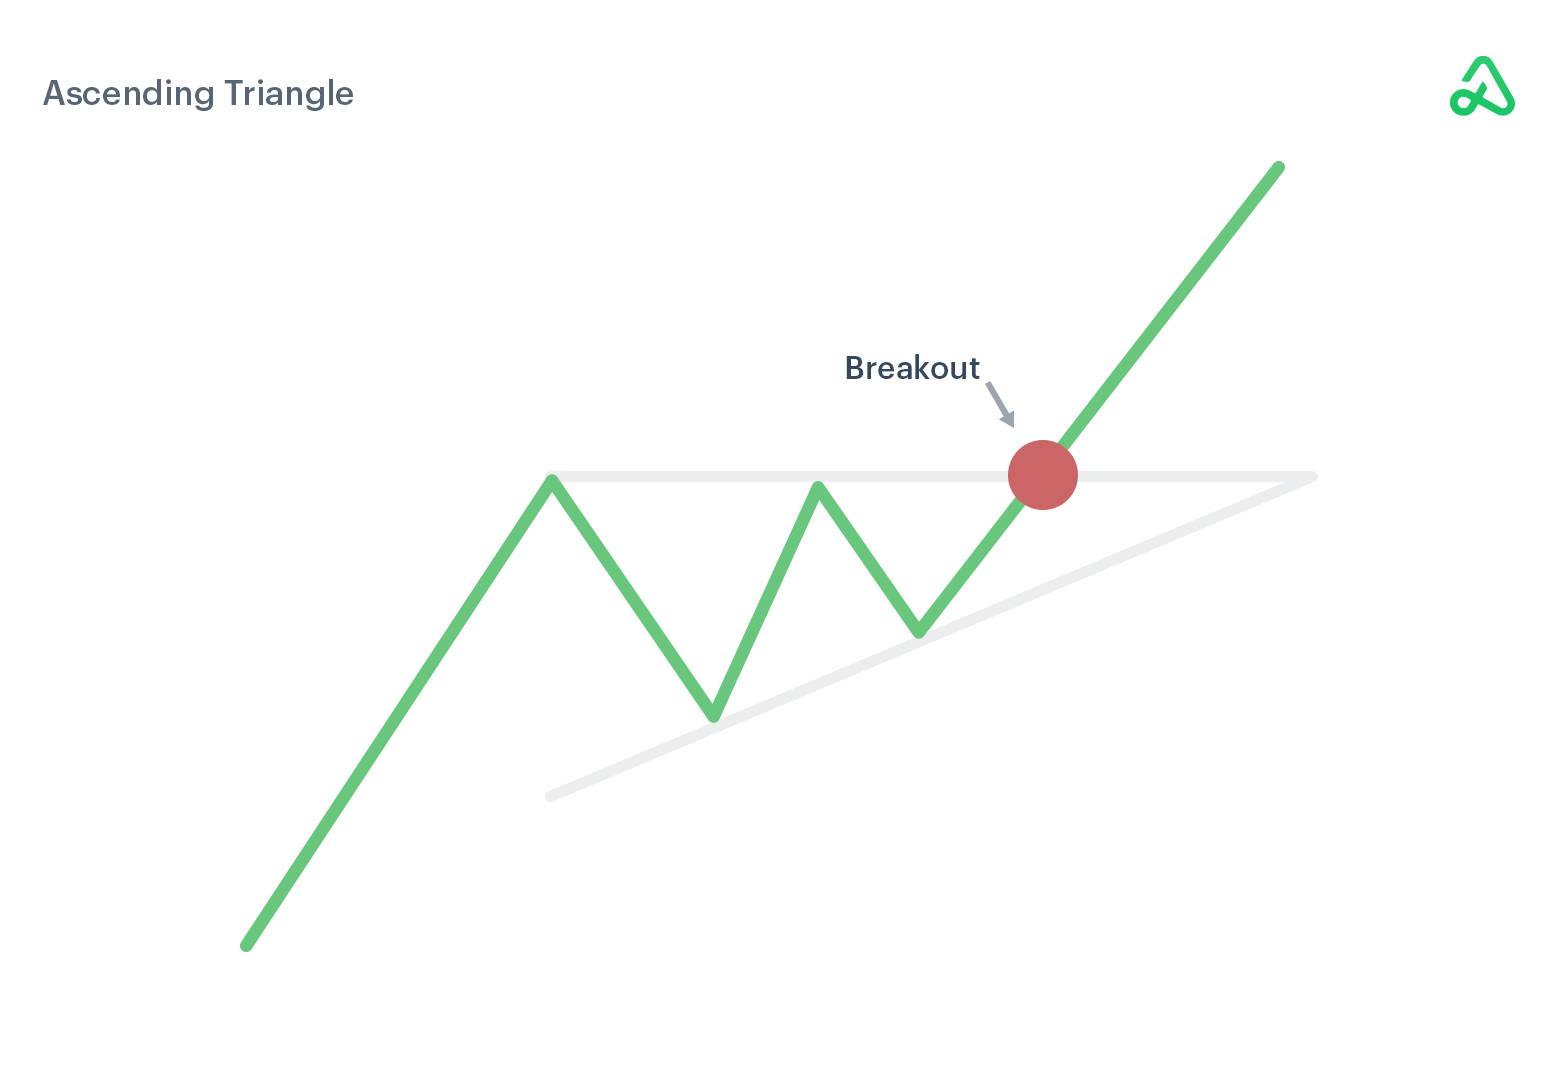 Ascending Triangle example image